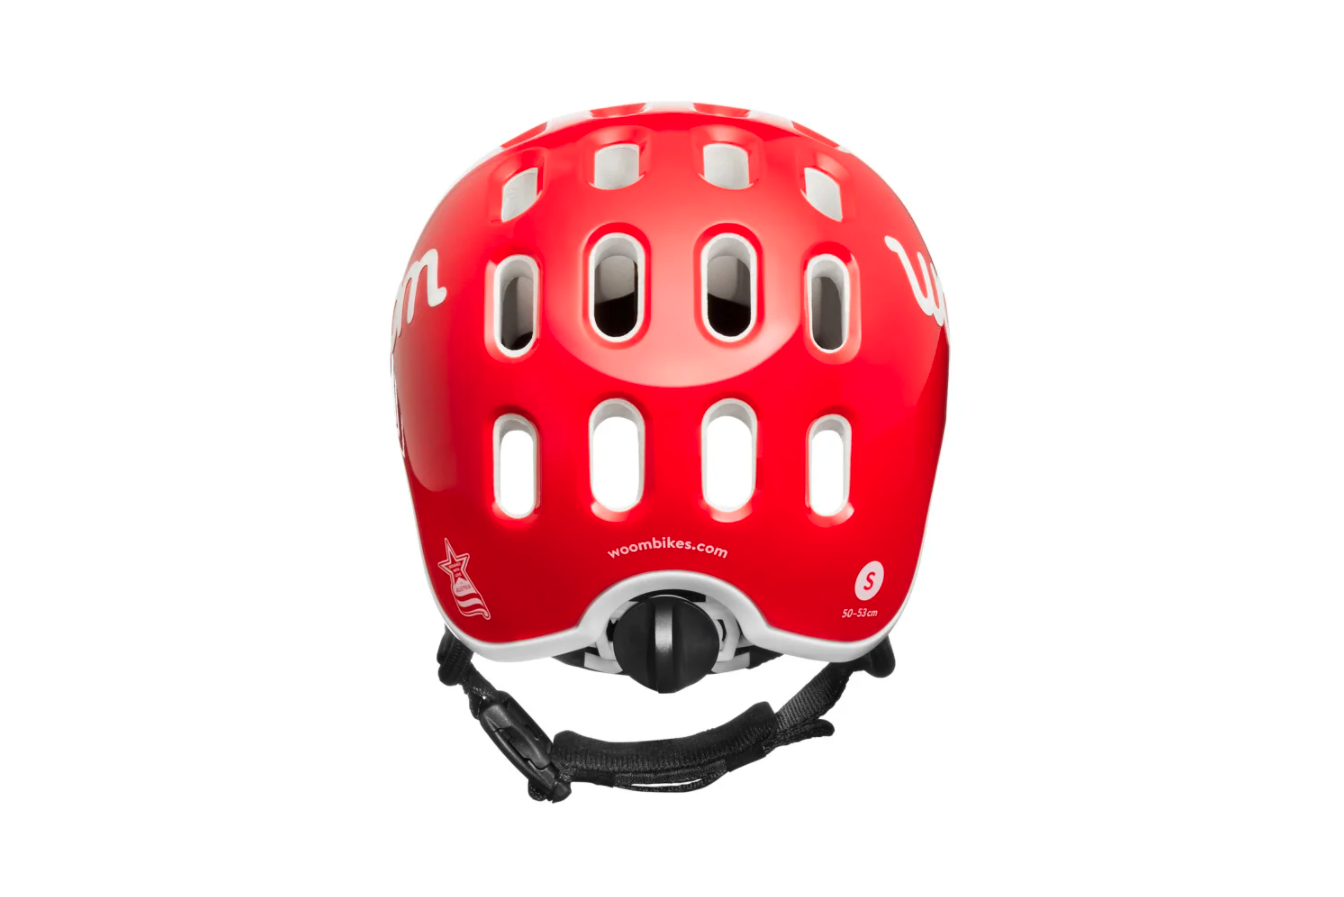 woom-casque-5.png